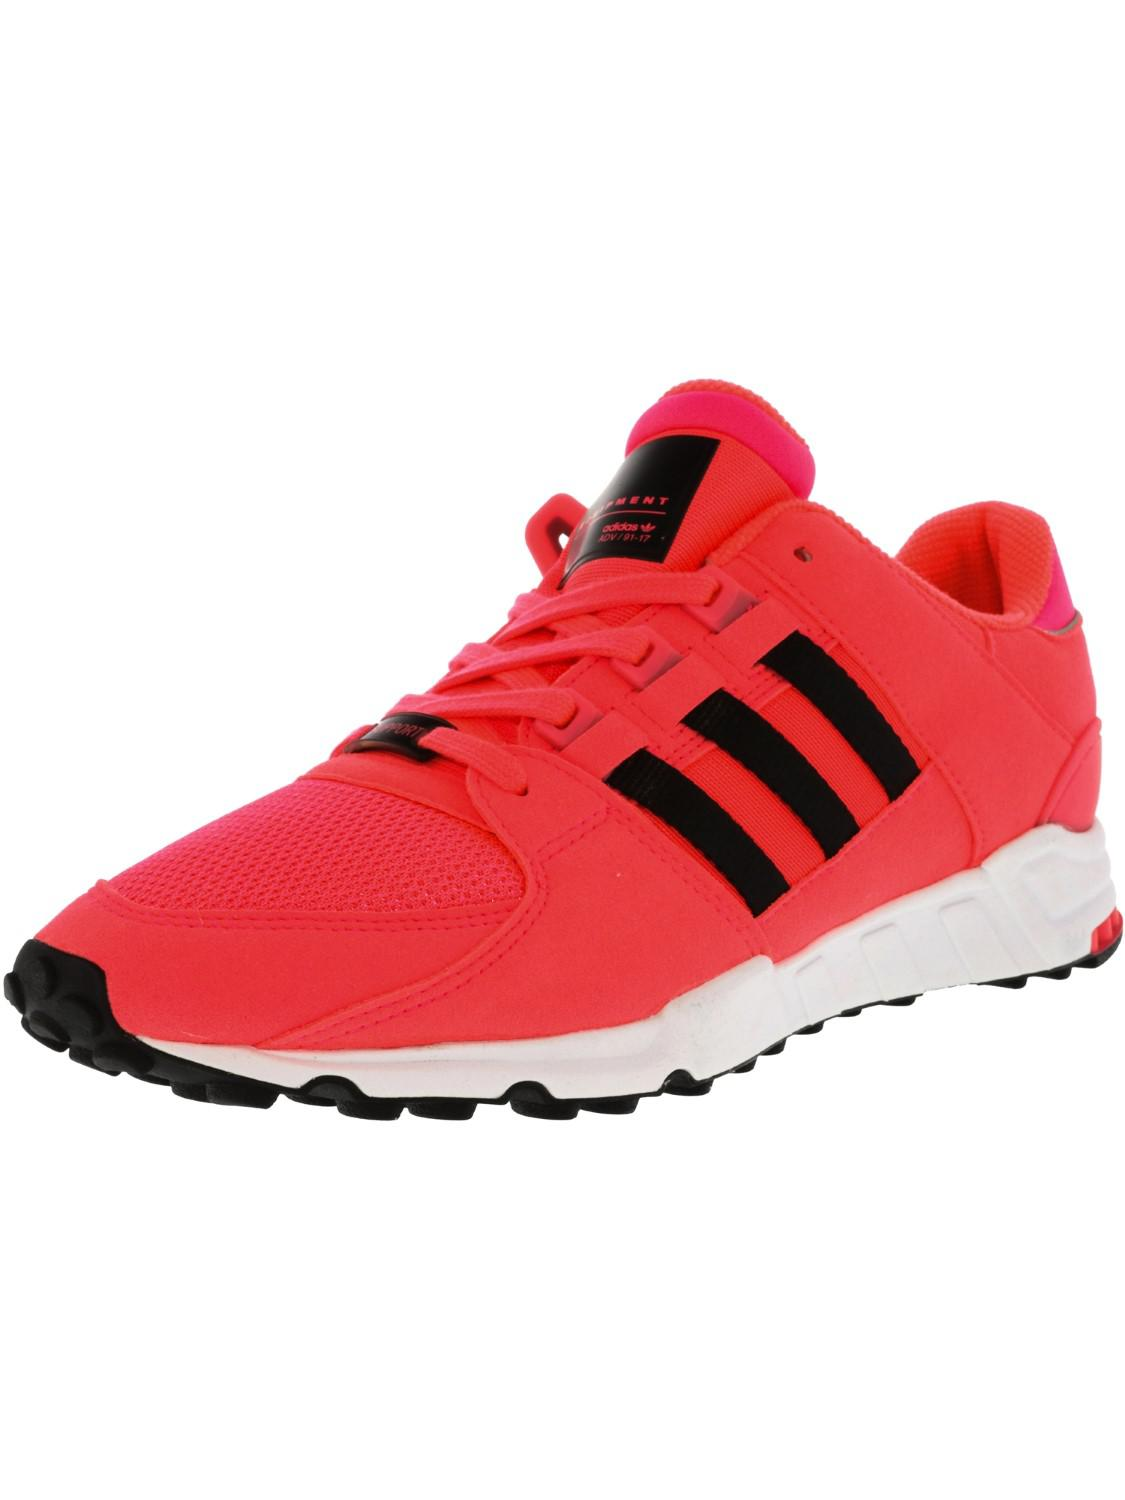 50f33a1f631 Lyst - Adidas Eqt Support Rf Turbo   Core Black Footwear White Ankle ...